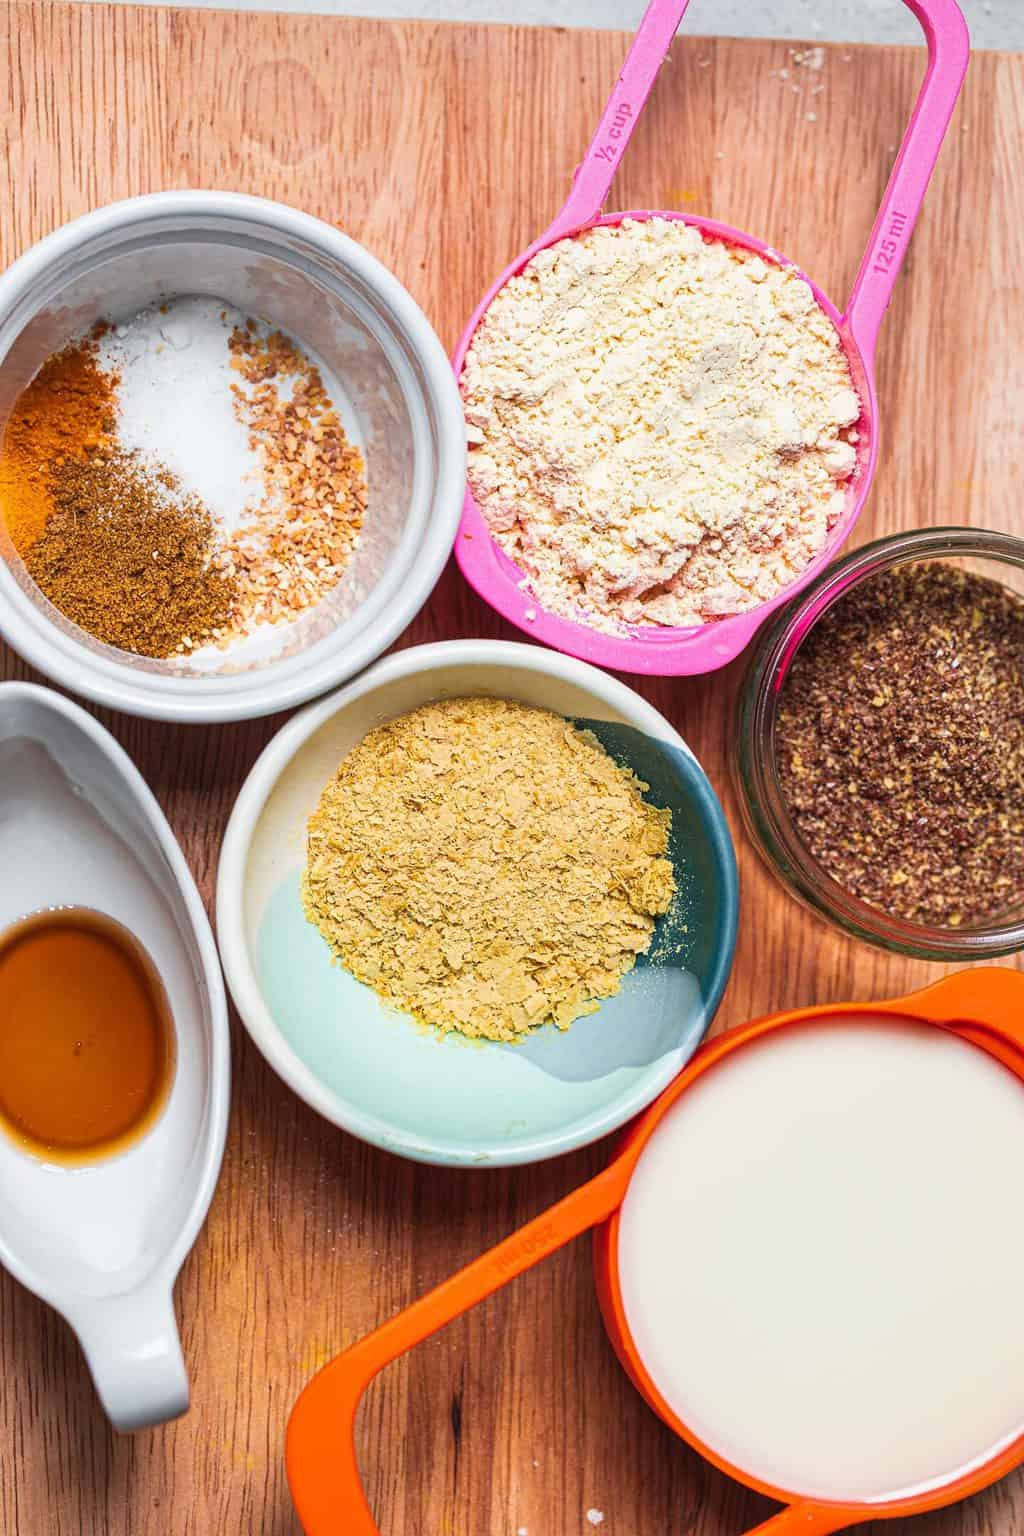 Ingredients for a vegan chickpea omelette